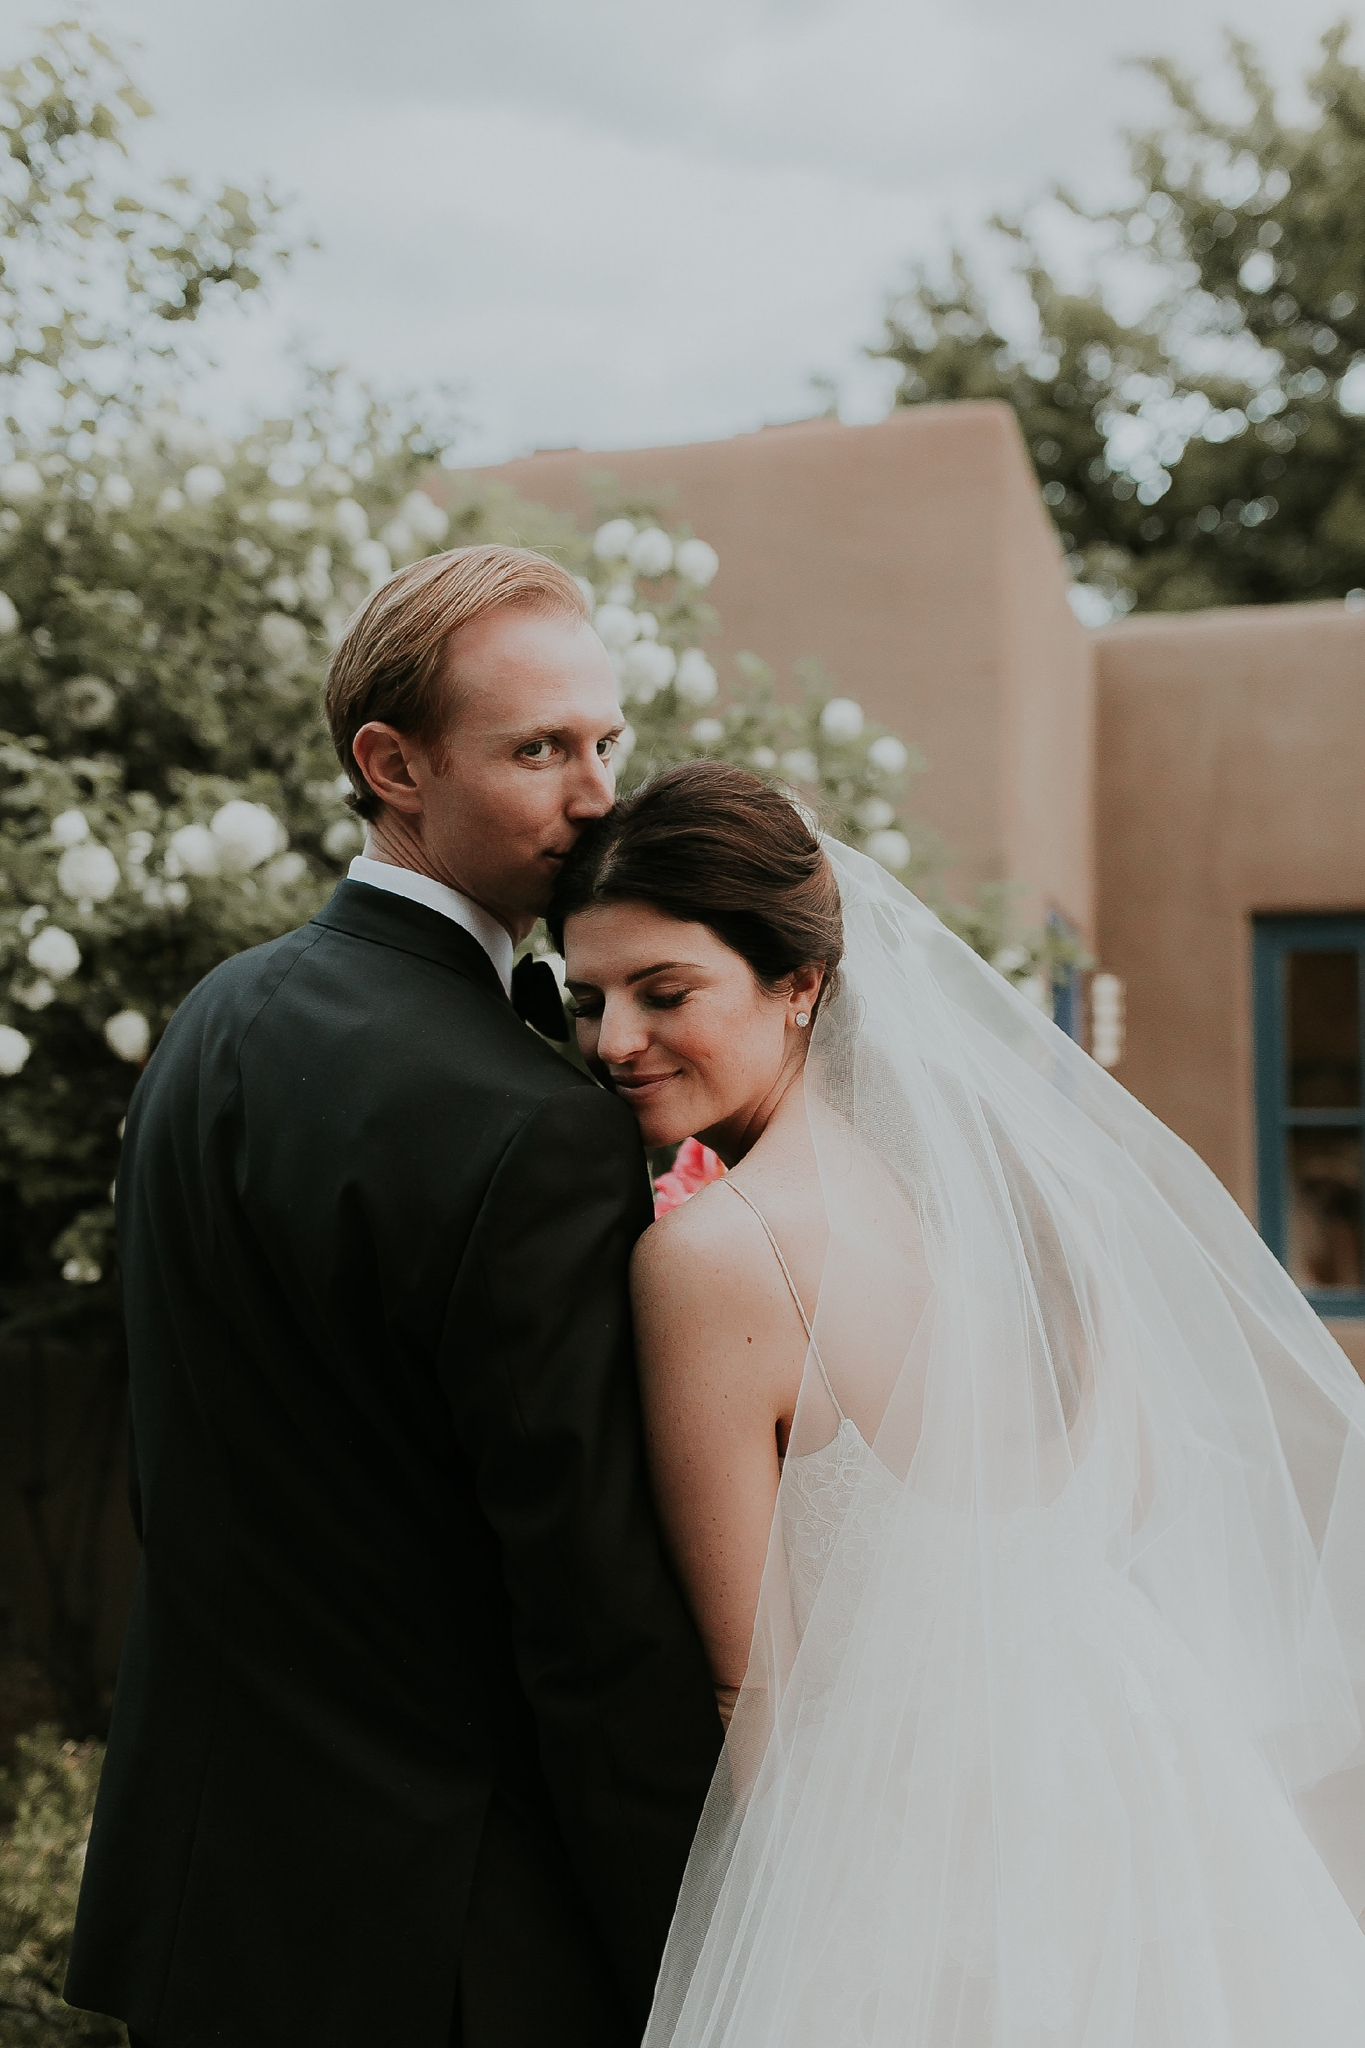 Alicia+lucia+photography+-+albuquerque+wedding+photographer+-+santa+fe+wedding+photography+-+new+mexico+wedding+photographer+-+new+mexico+wedding+-+albuquerque+wedding+-+santa+fe+wedding+-+wedding+romantics_0019.jpg